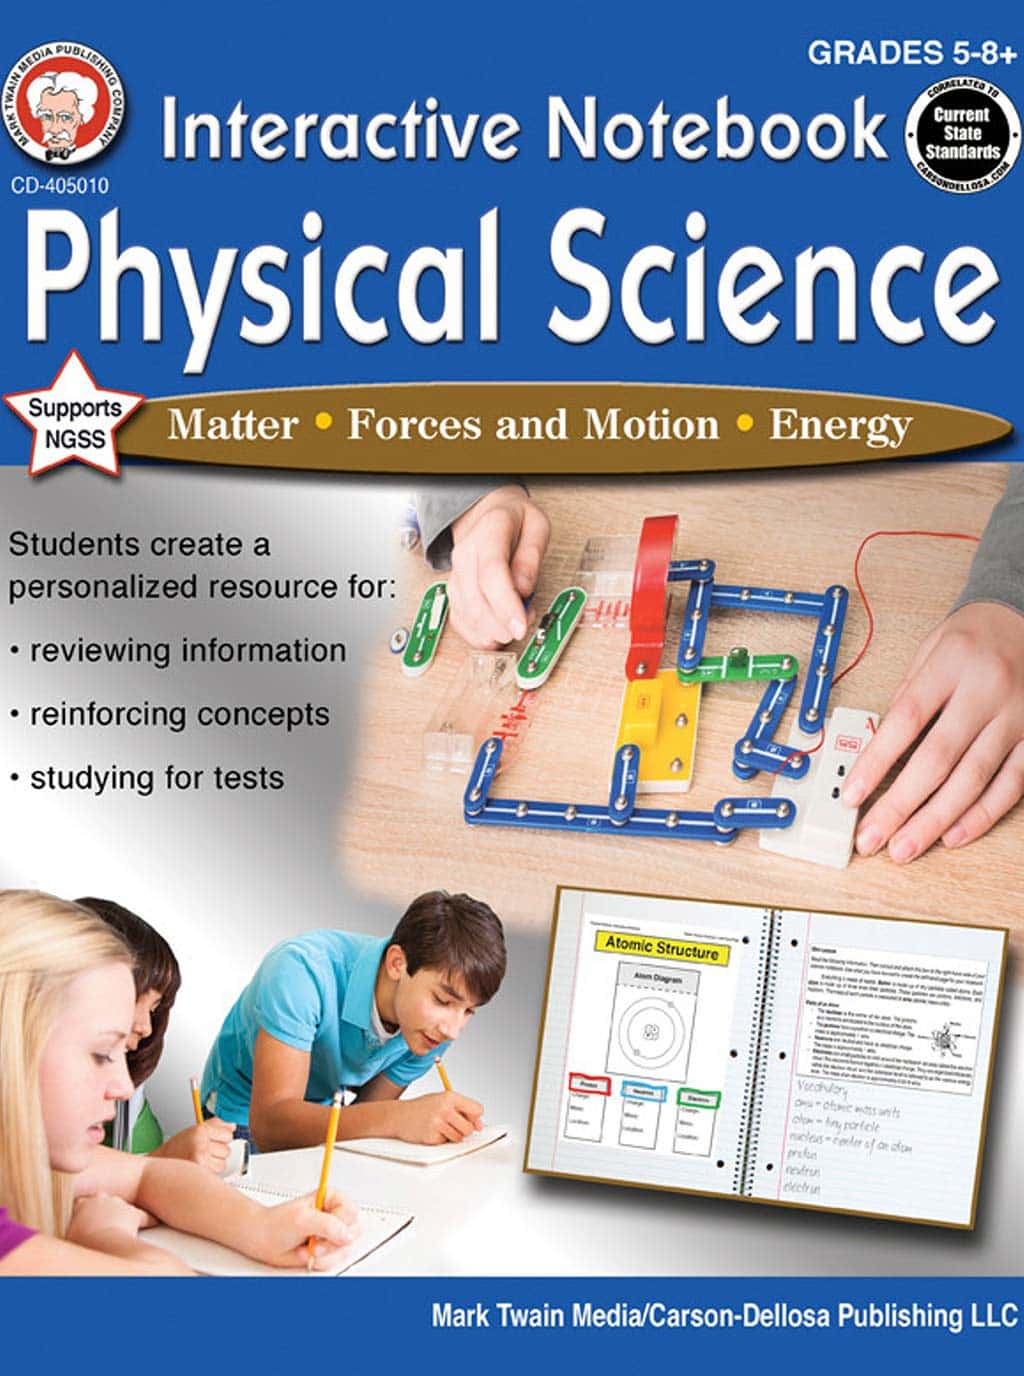 Science Shepherd Physics homeschool curriculum activity book cover